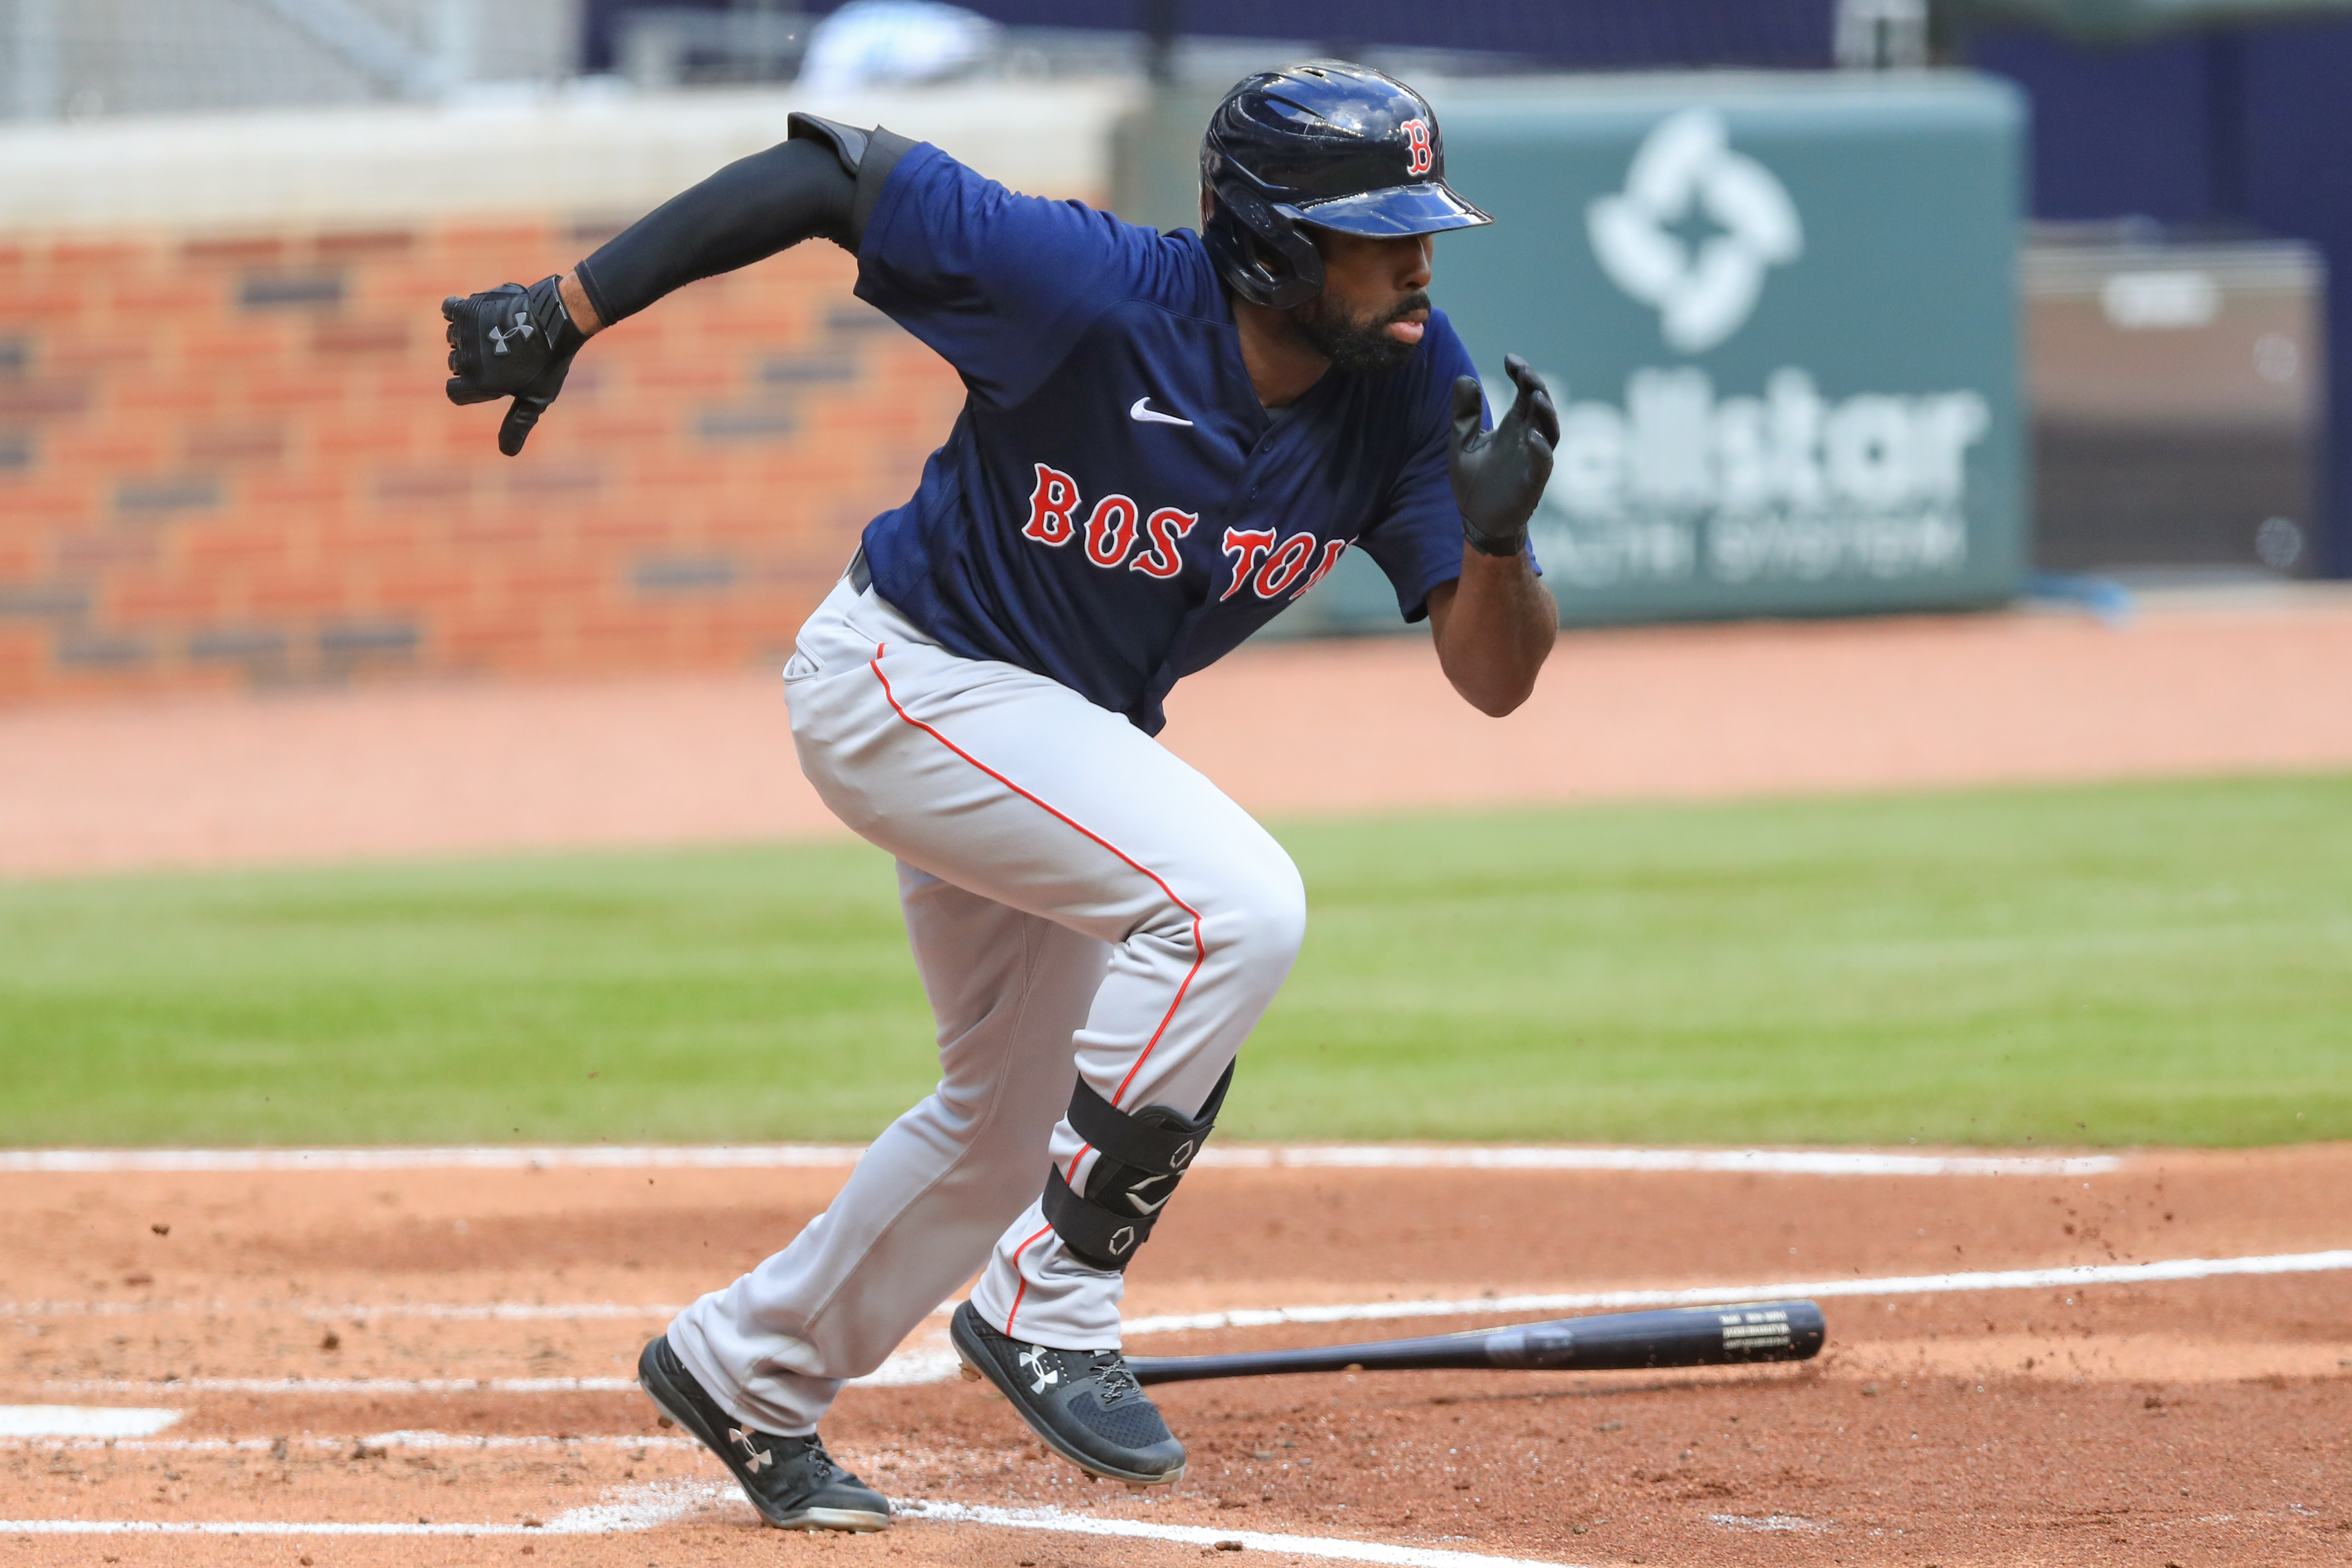 Jackie Bradley Jr. #19 of the Boston Red Sox in action during a game against the Atlanta Braves at Truist Park on September 27, 2020 in Atlanta, Georgia.